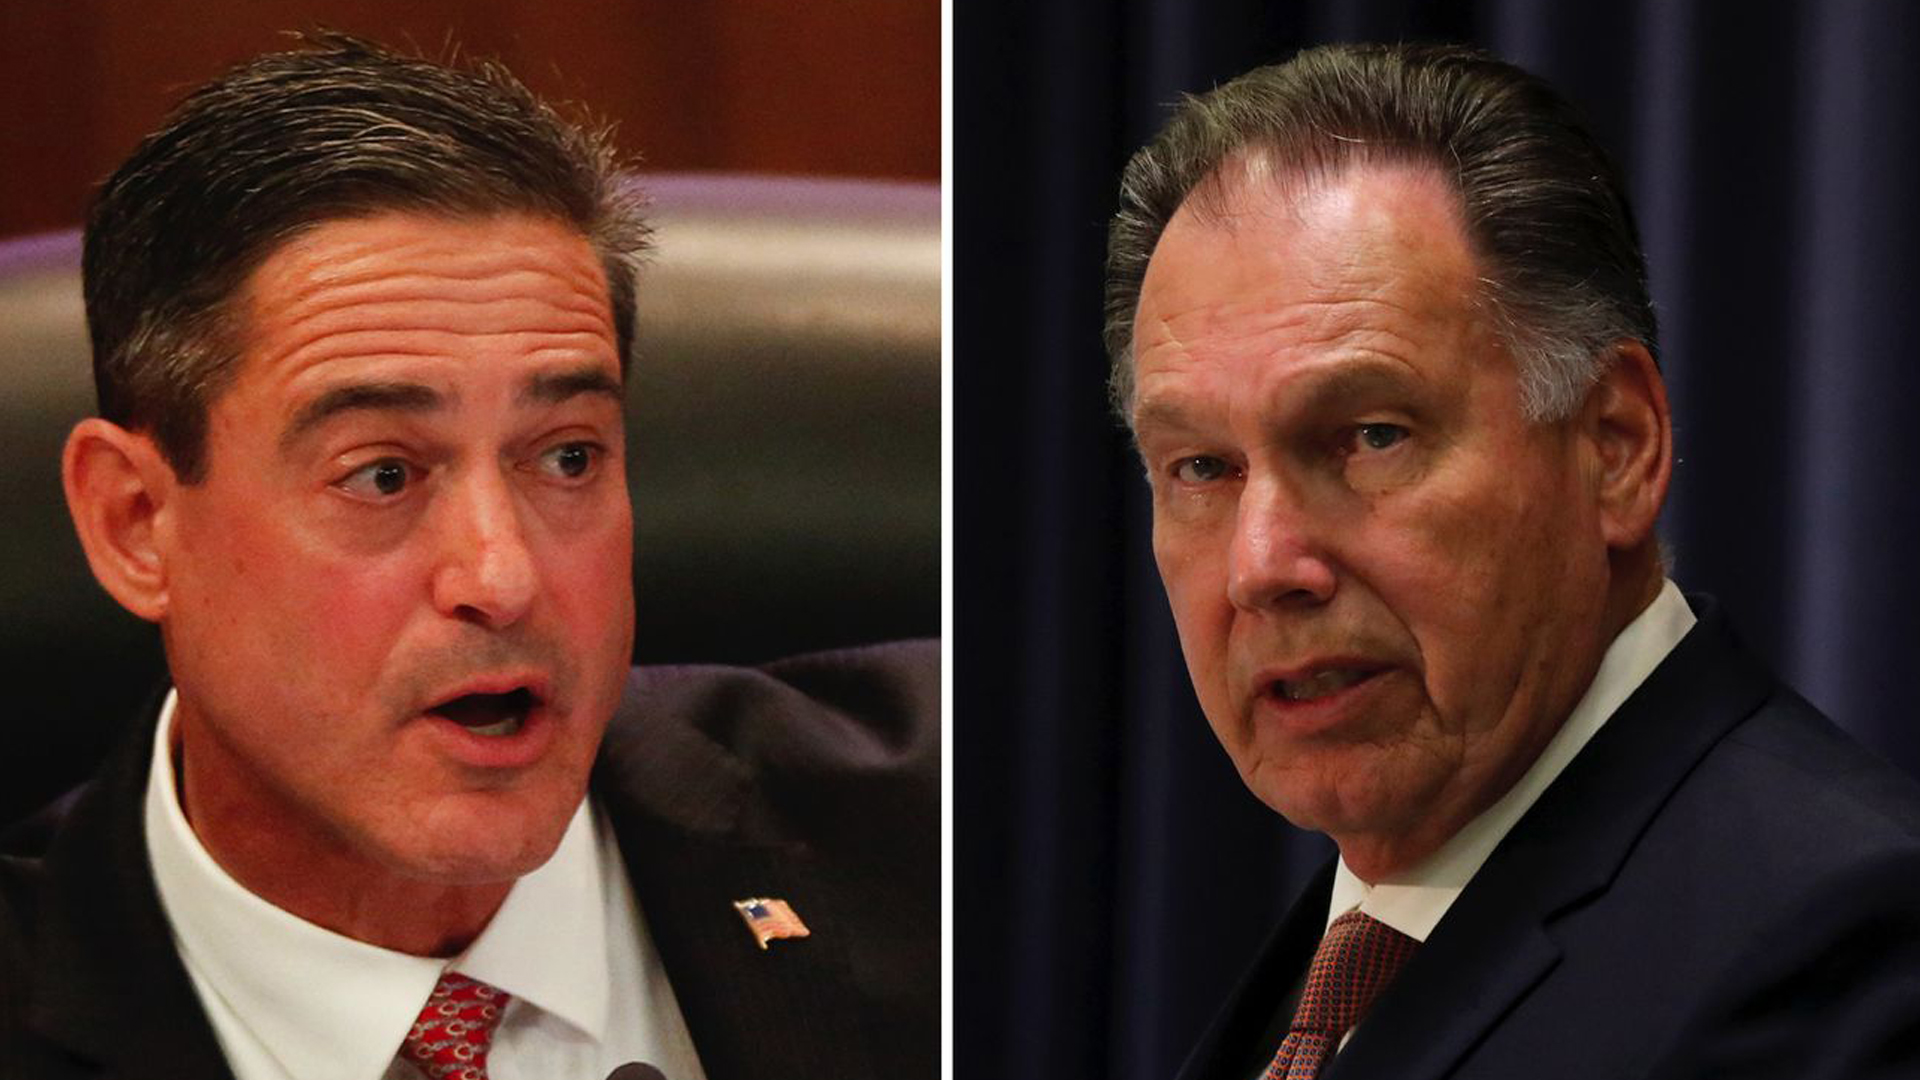 Orange County Supervisor Todd Spitzer, left, and longtime DA Tony Rackauckas are seen in undated photos. The two are getting into a heated race for the O.C. DA's office in the 2018 midterm election. (Credit: Los Angeles Times)